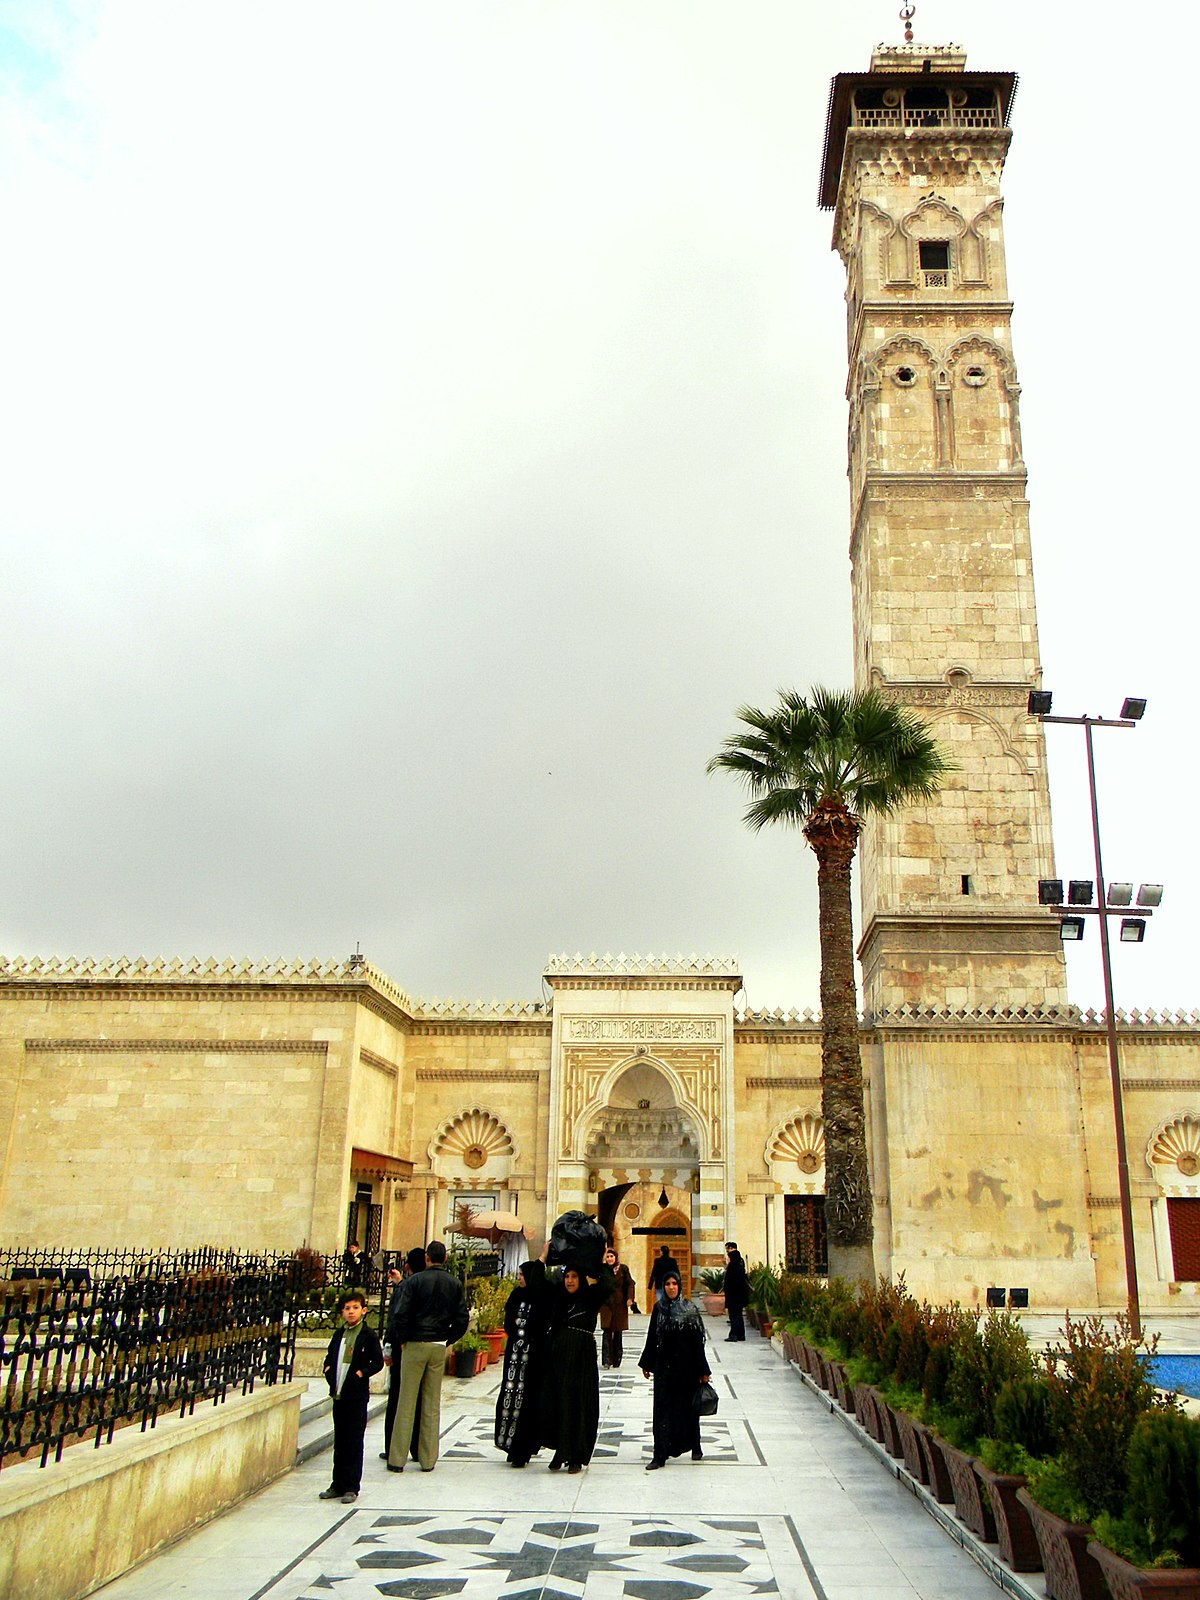 List of heritage sites damaged during the Syrian Civil War